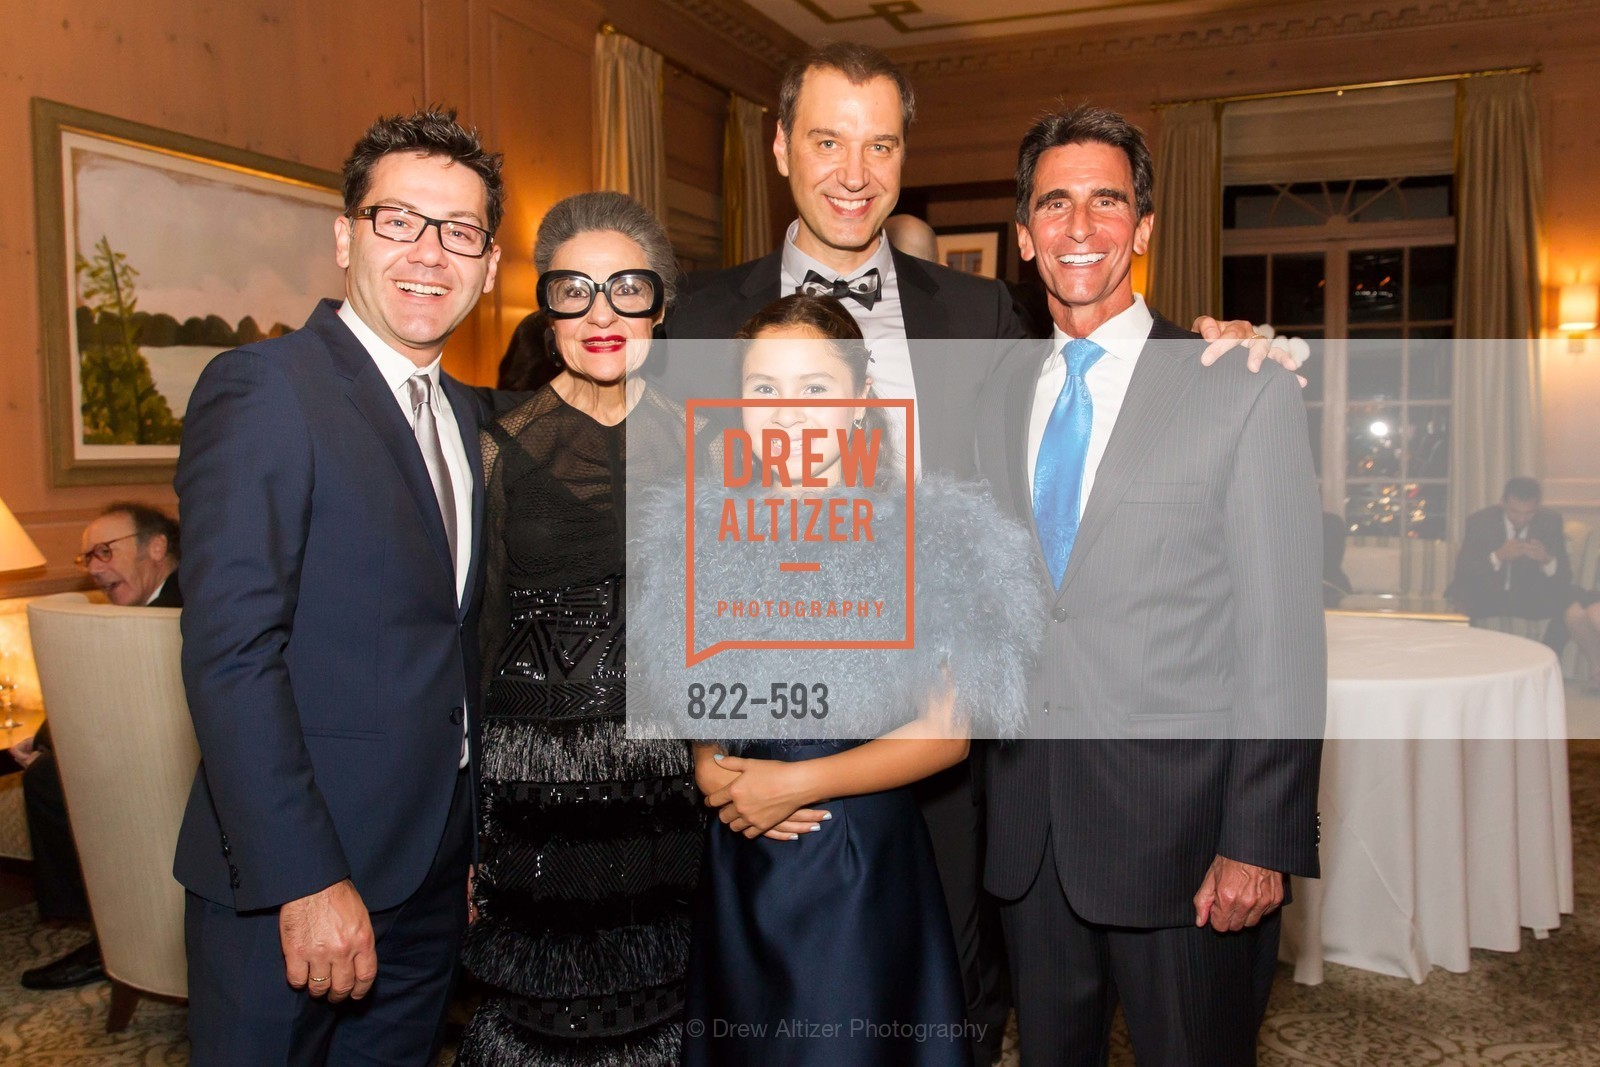 Sonny Vukic, Joy Venturini Bianchi, Frank Silletti, Eva Vukic, Mark Leno, COUTURE FOR A CAUSE, US, October 5th, 2014,Drew Altizer, Drew Altizer Photography, full-service event agency, private events, San Francisco photographer, photographer California